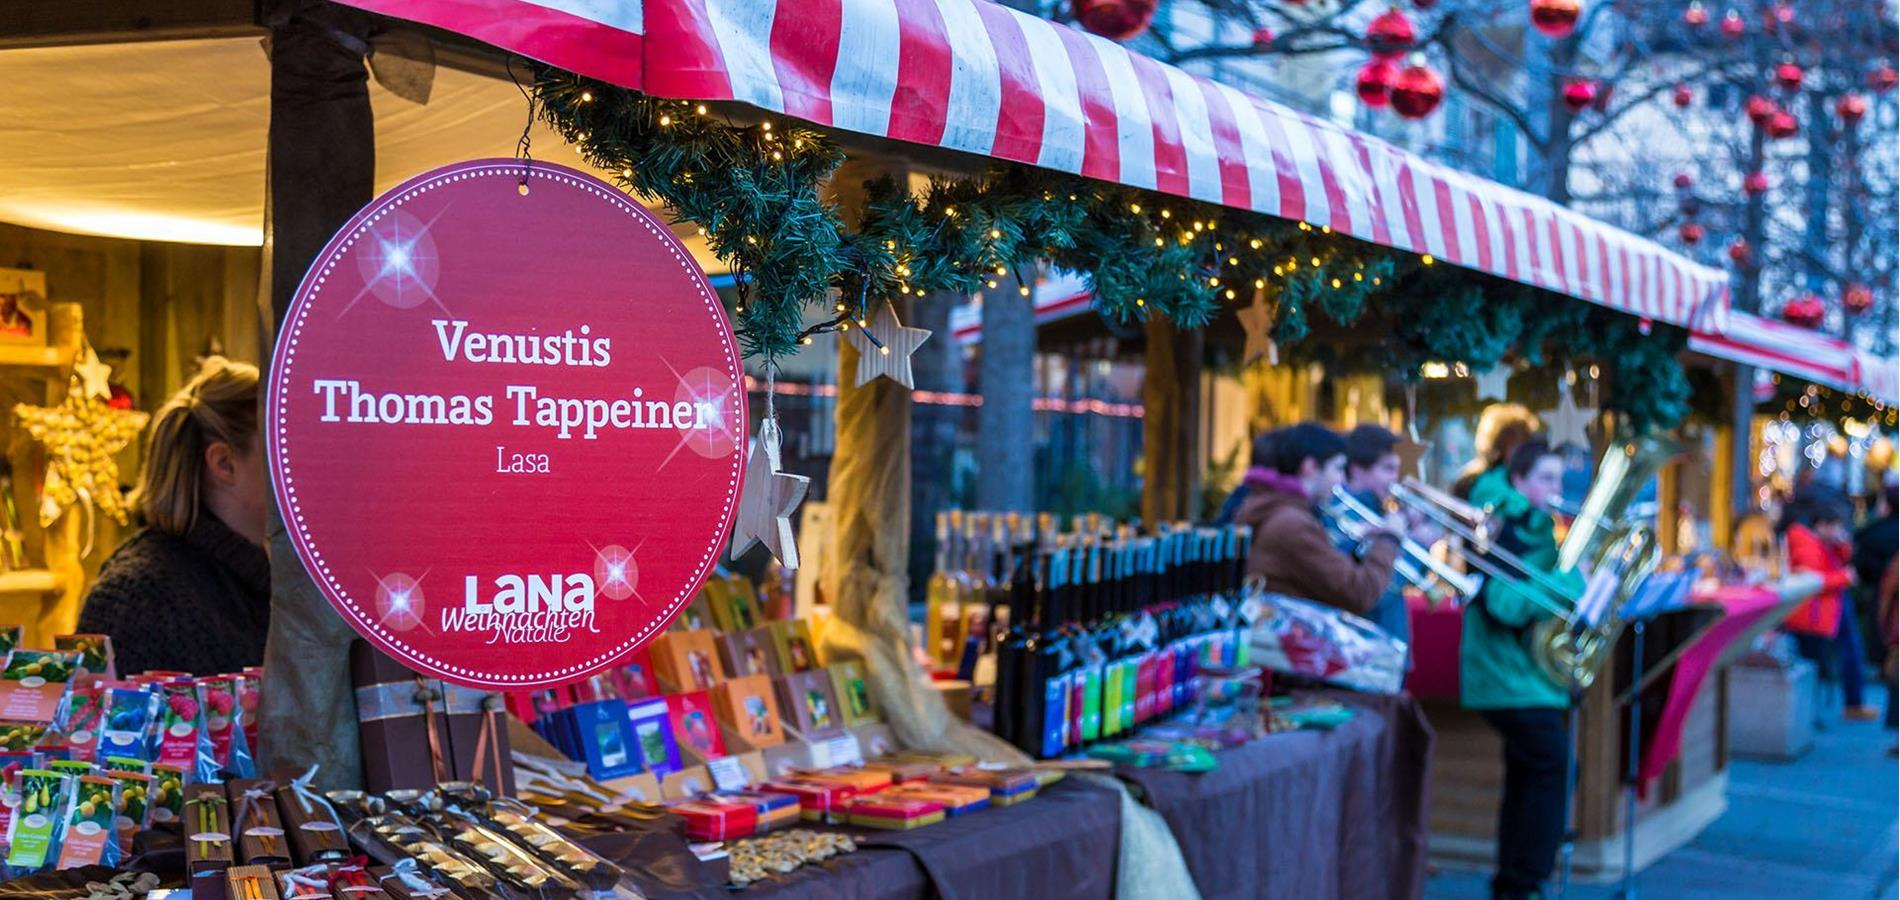 Highlights of the Sterntaler Christmas market